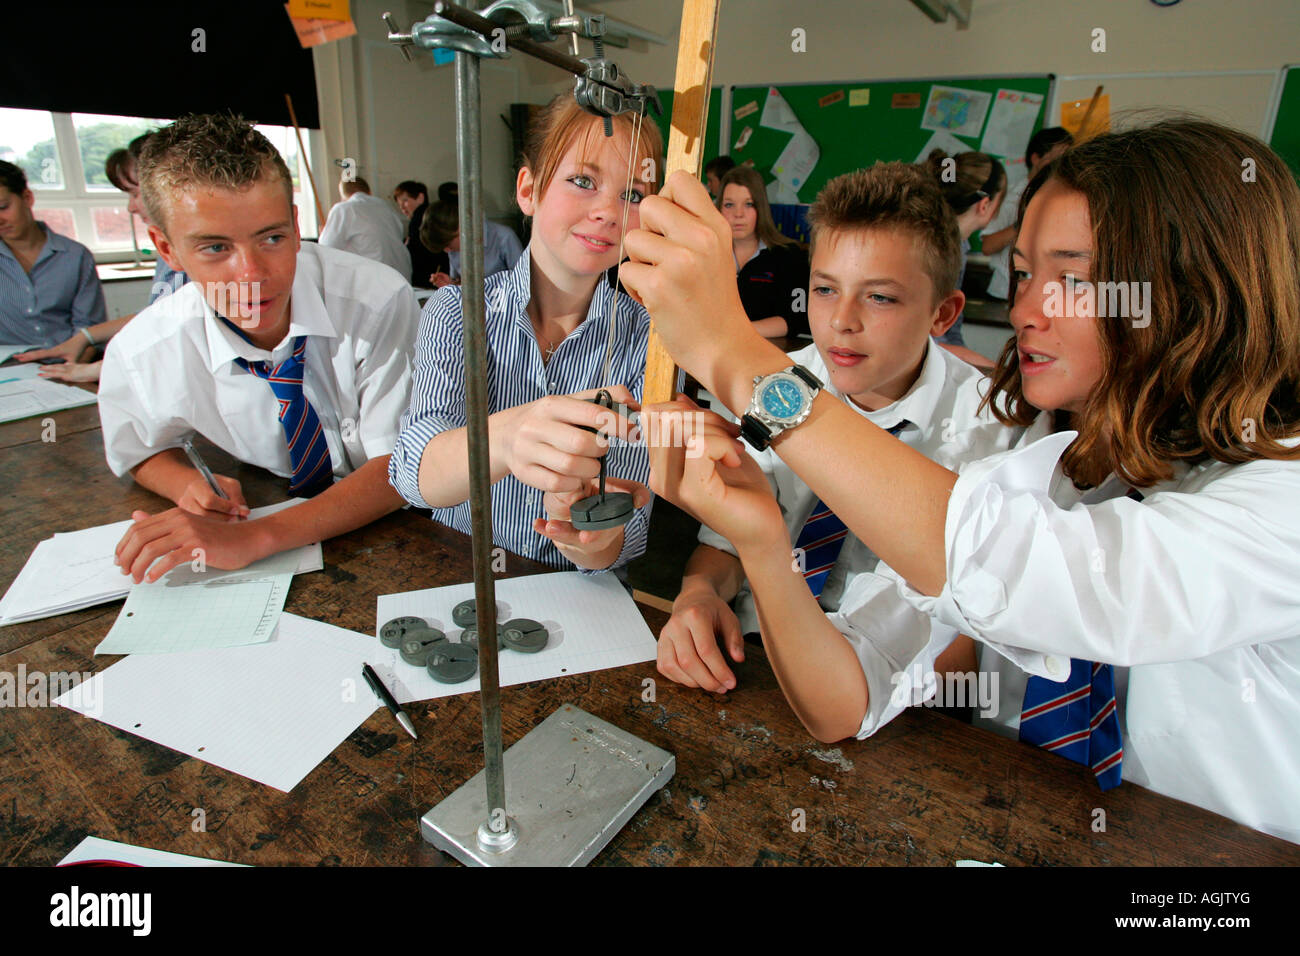 Science Class For High School